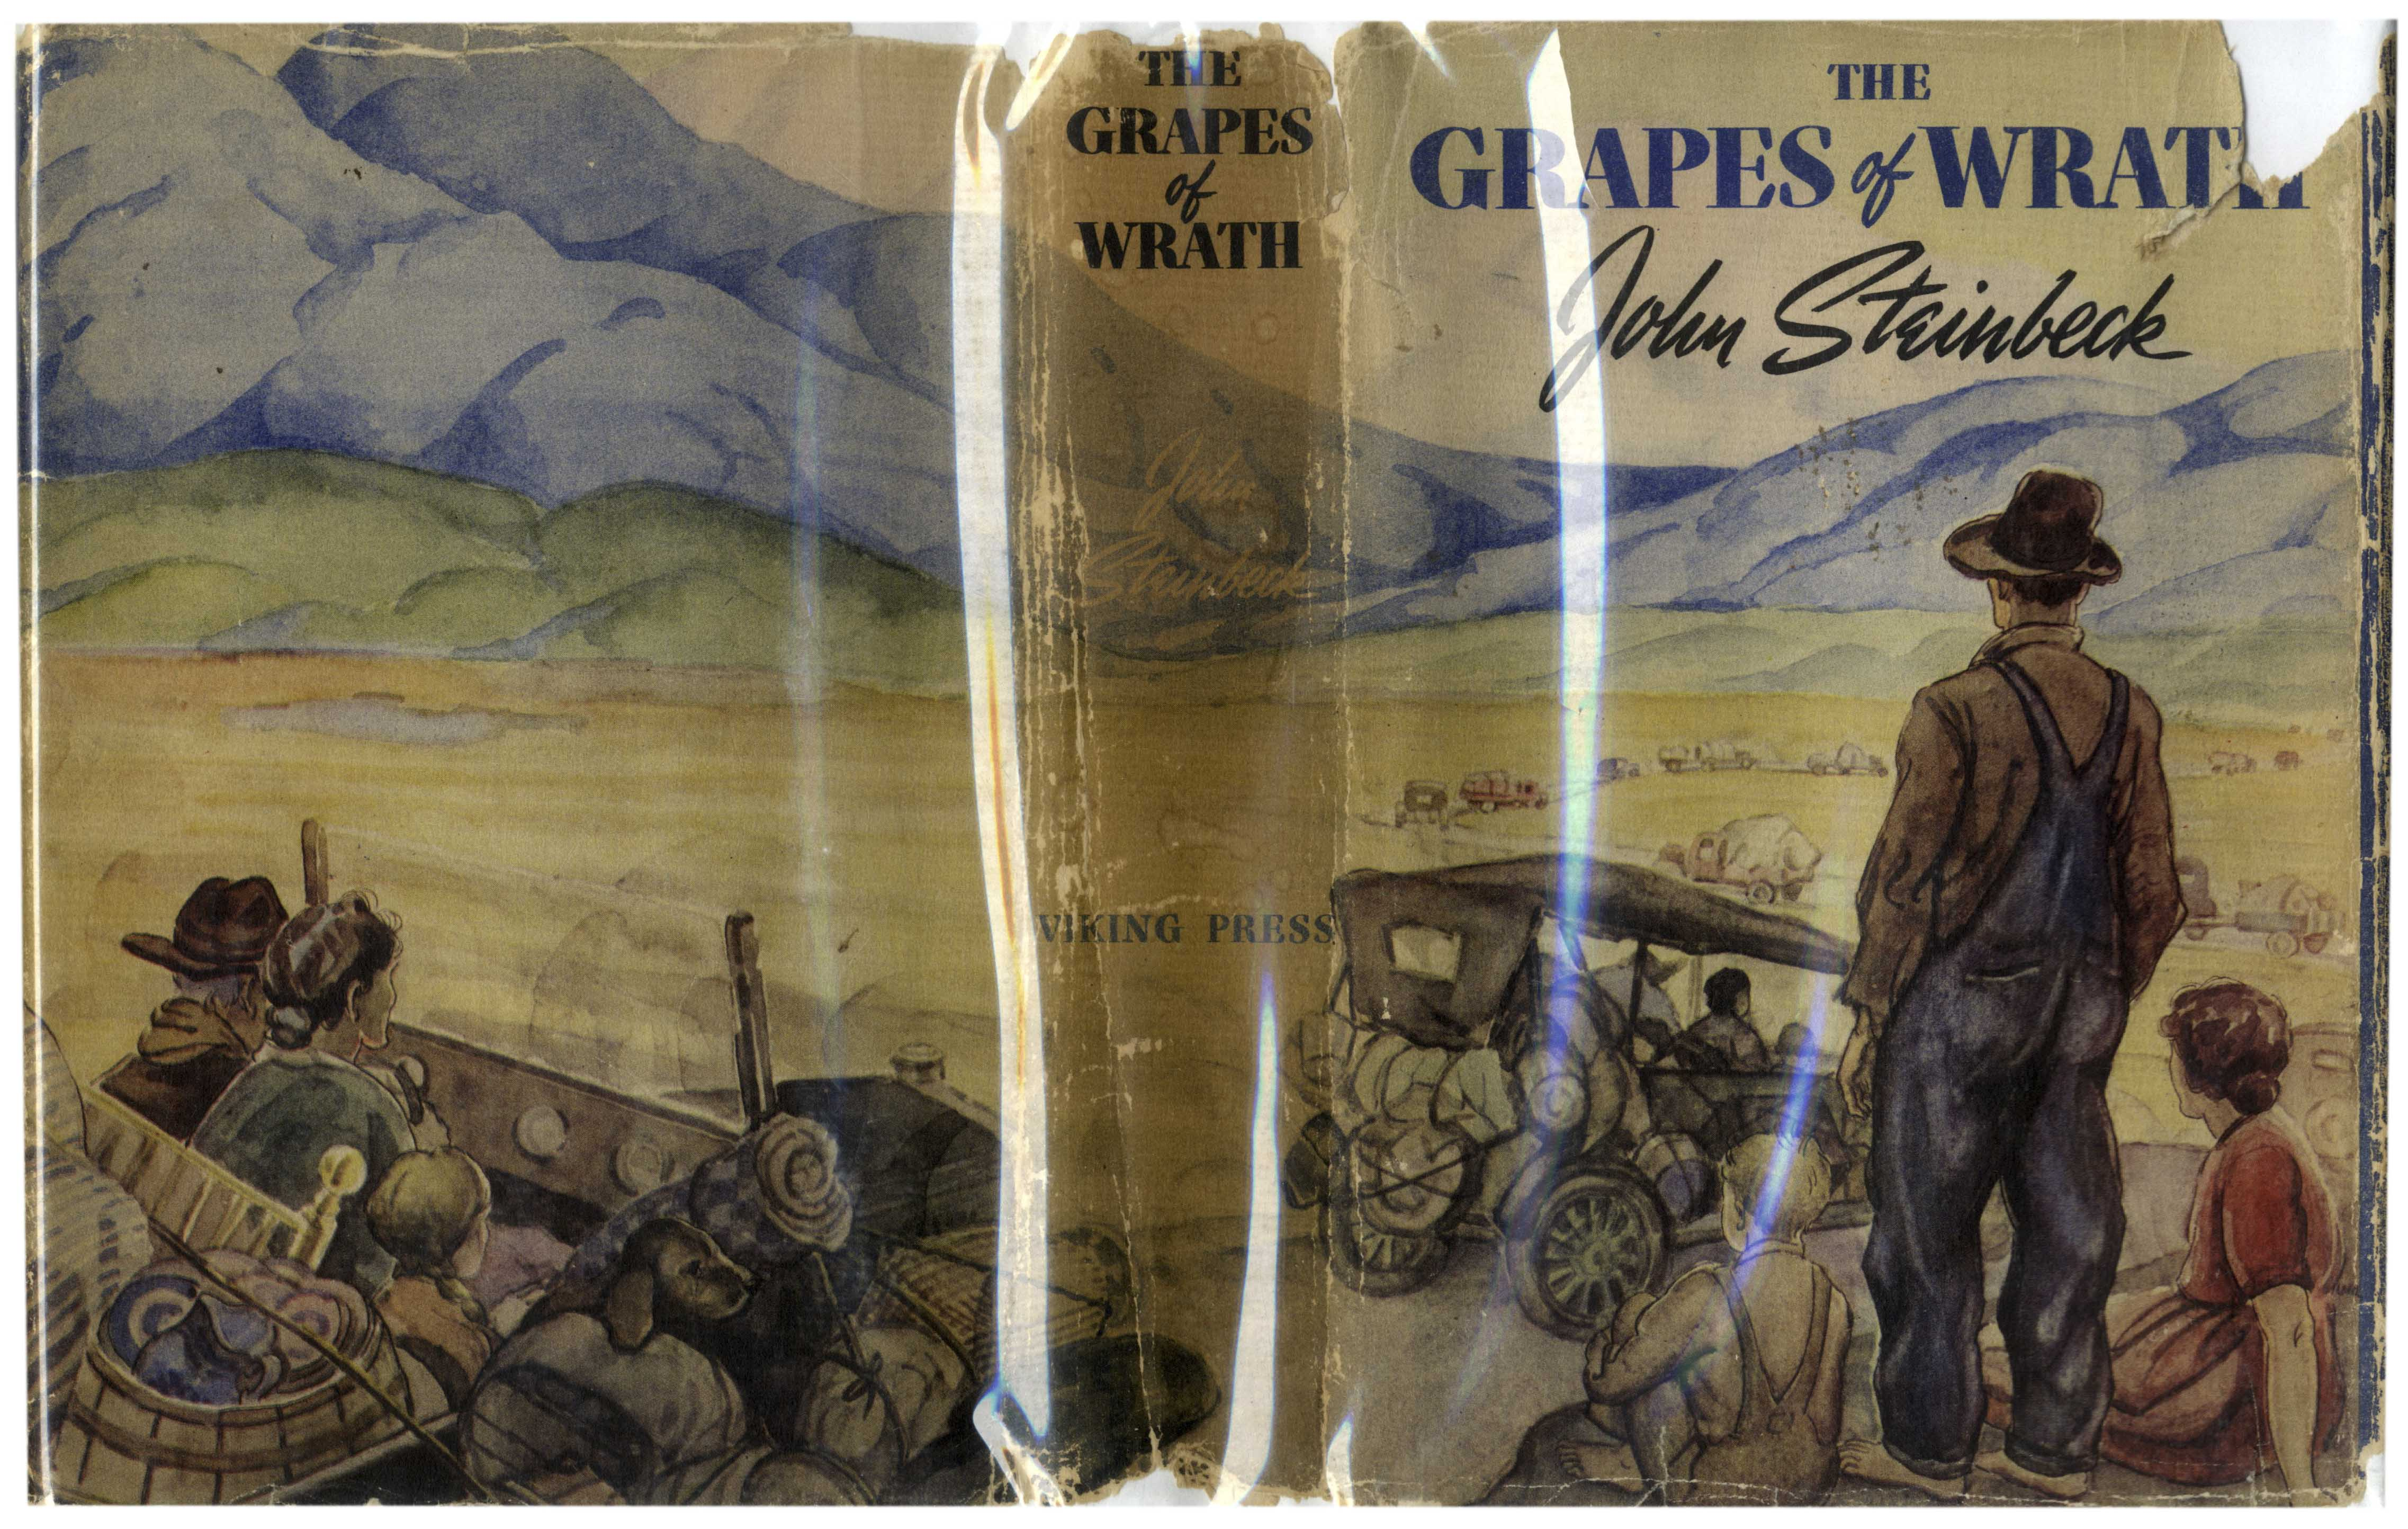 the grapes of wrath figure